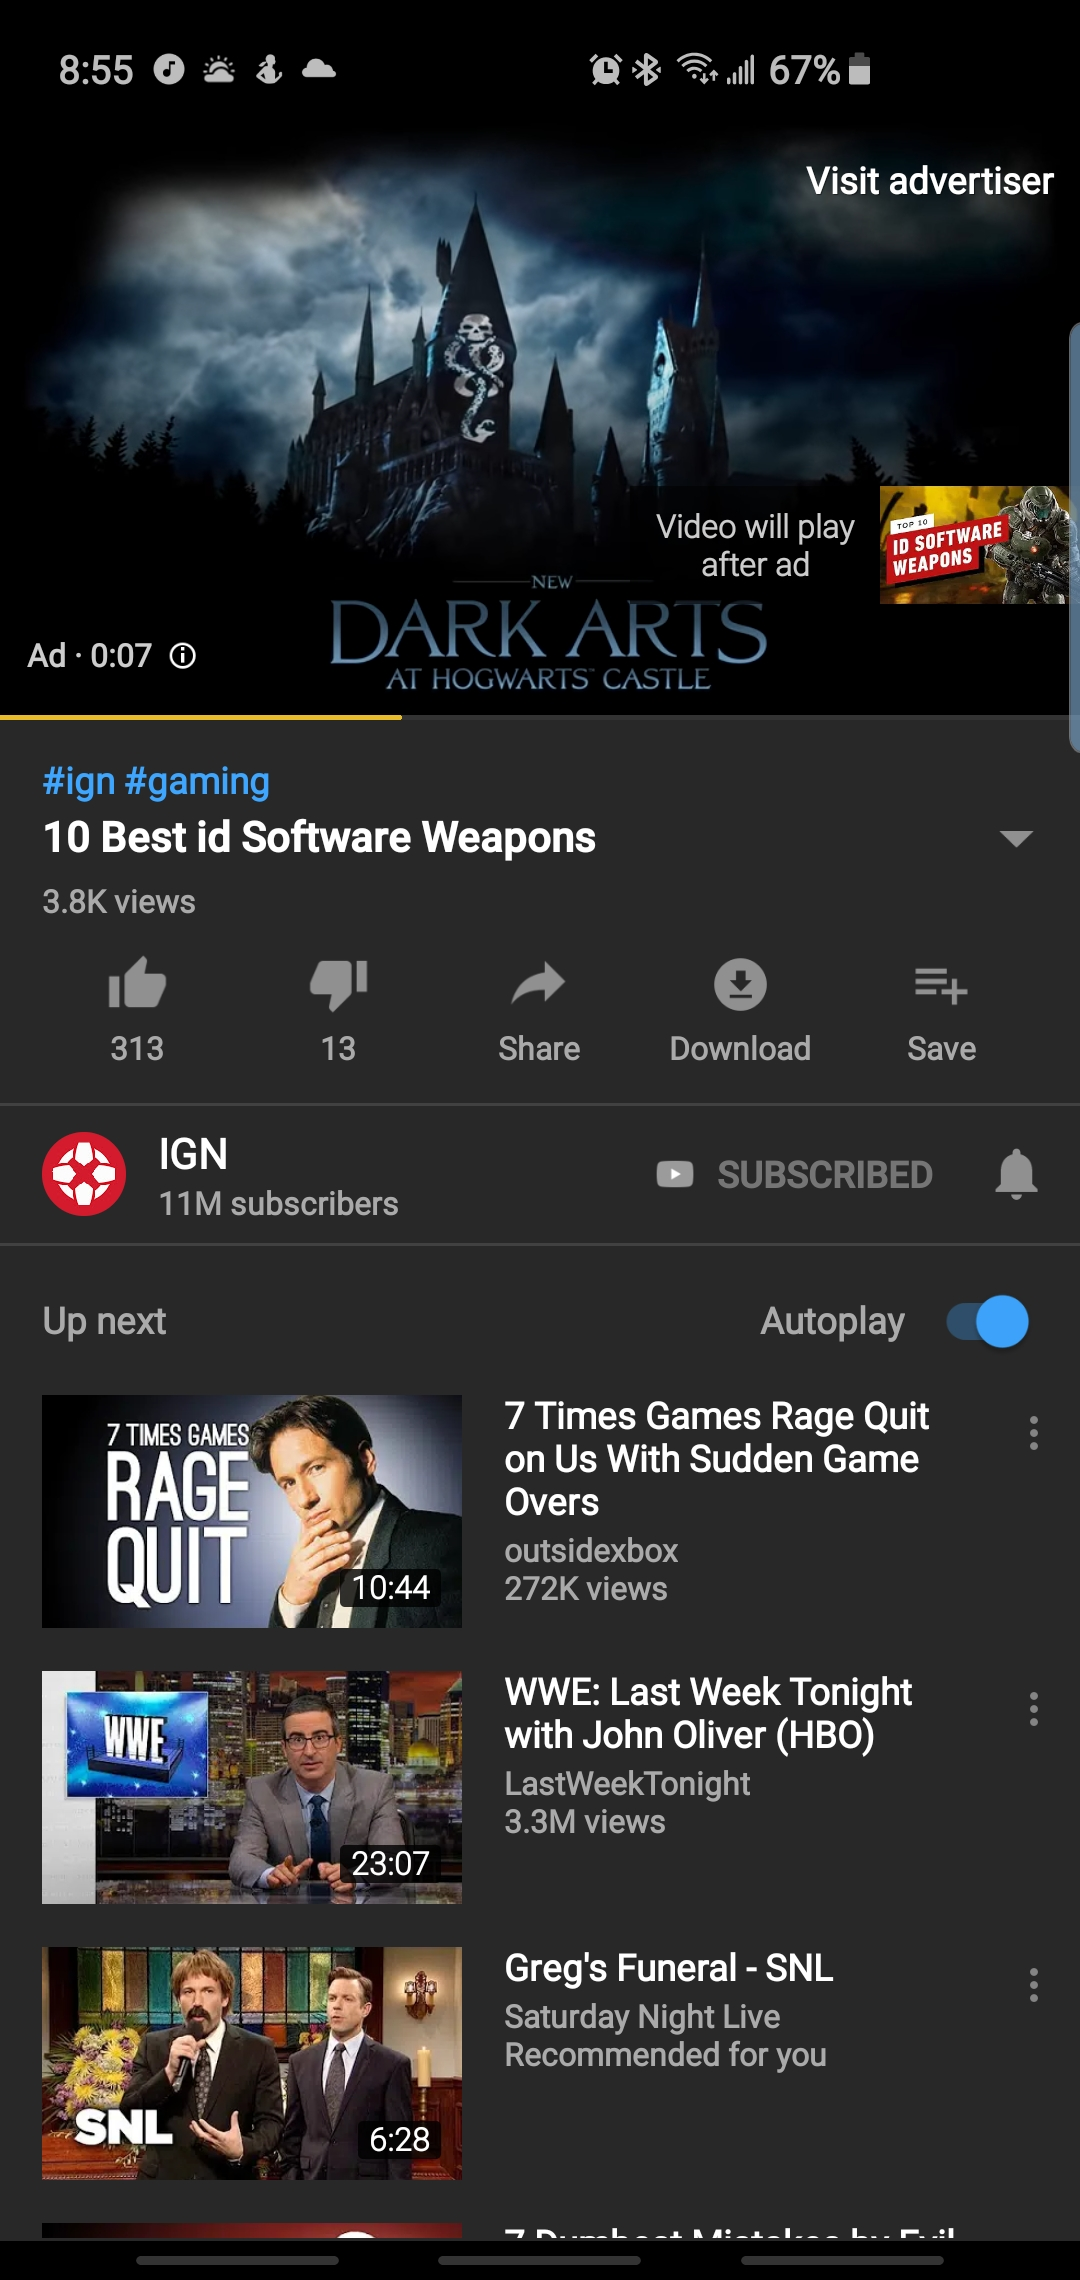 Short Ads showing up on my YouTube premium before the video